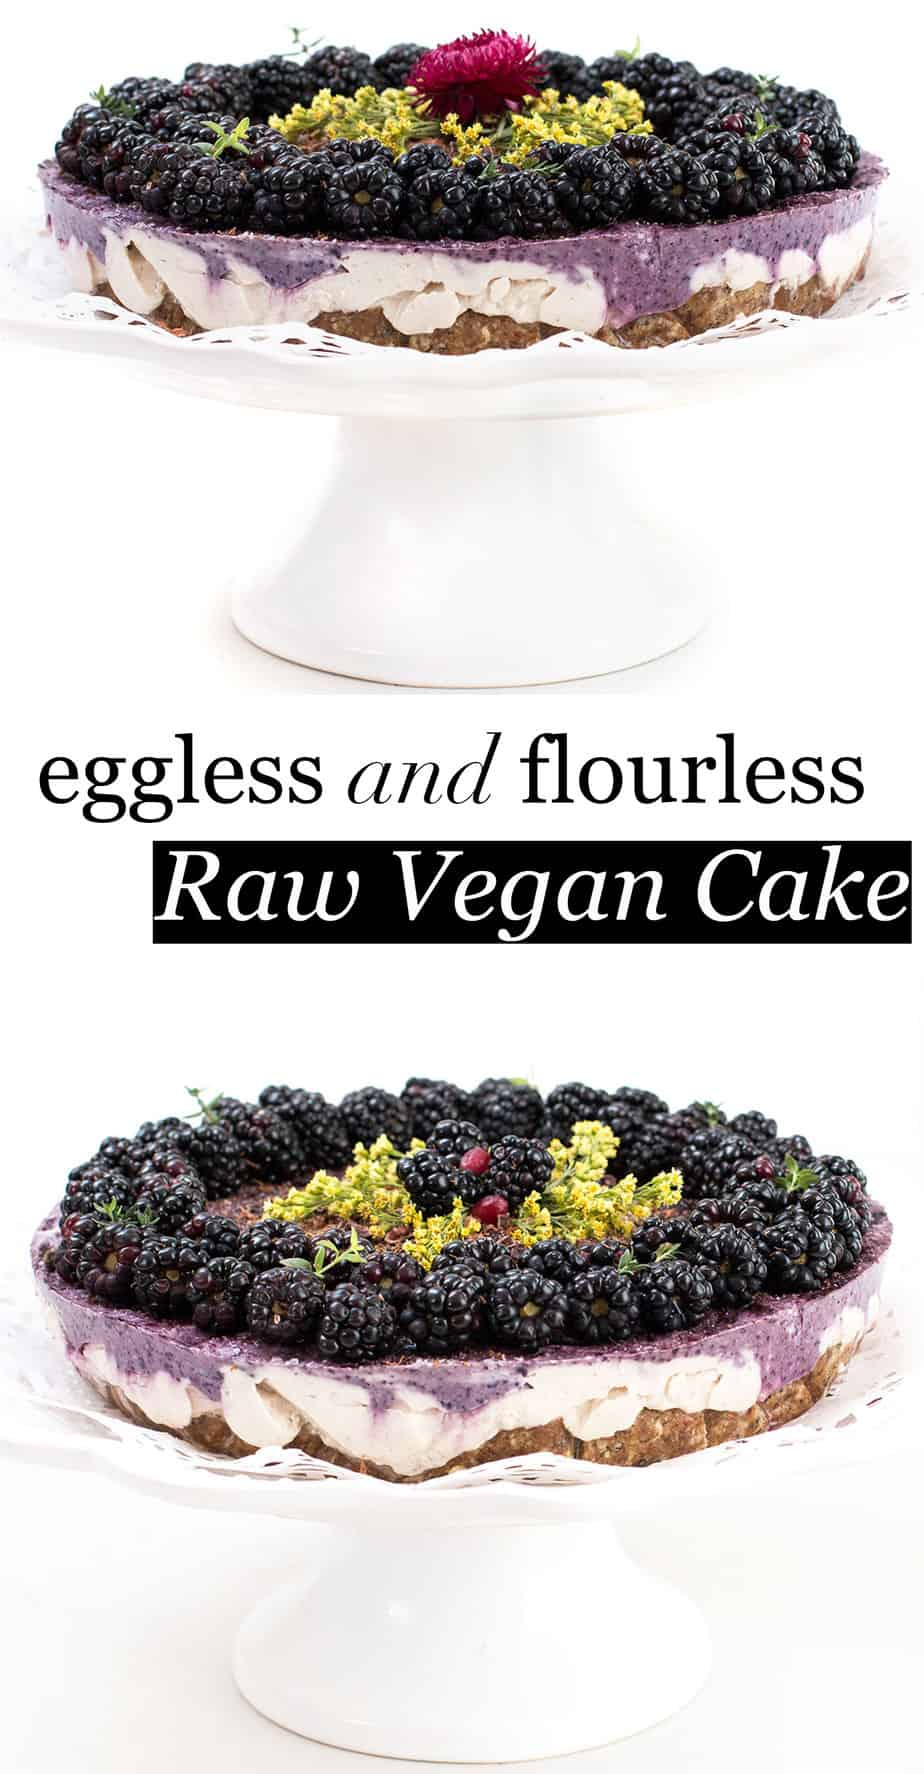 eggless-flourless-raw-vegan-cake